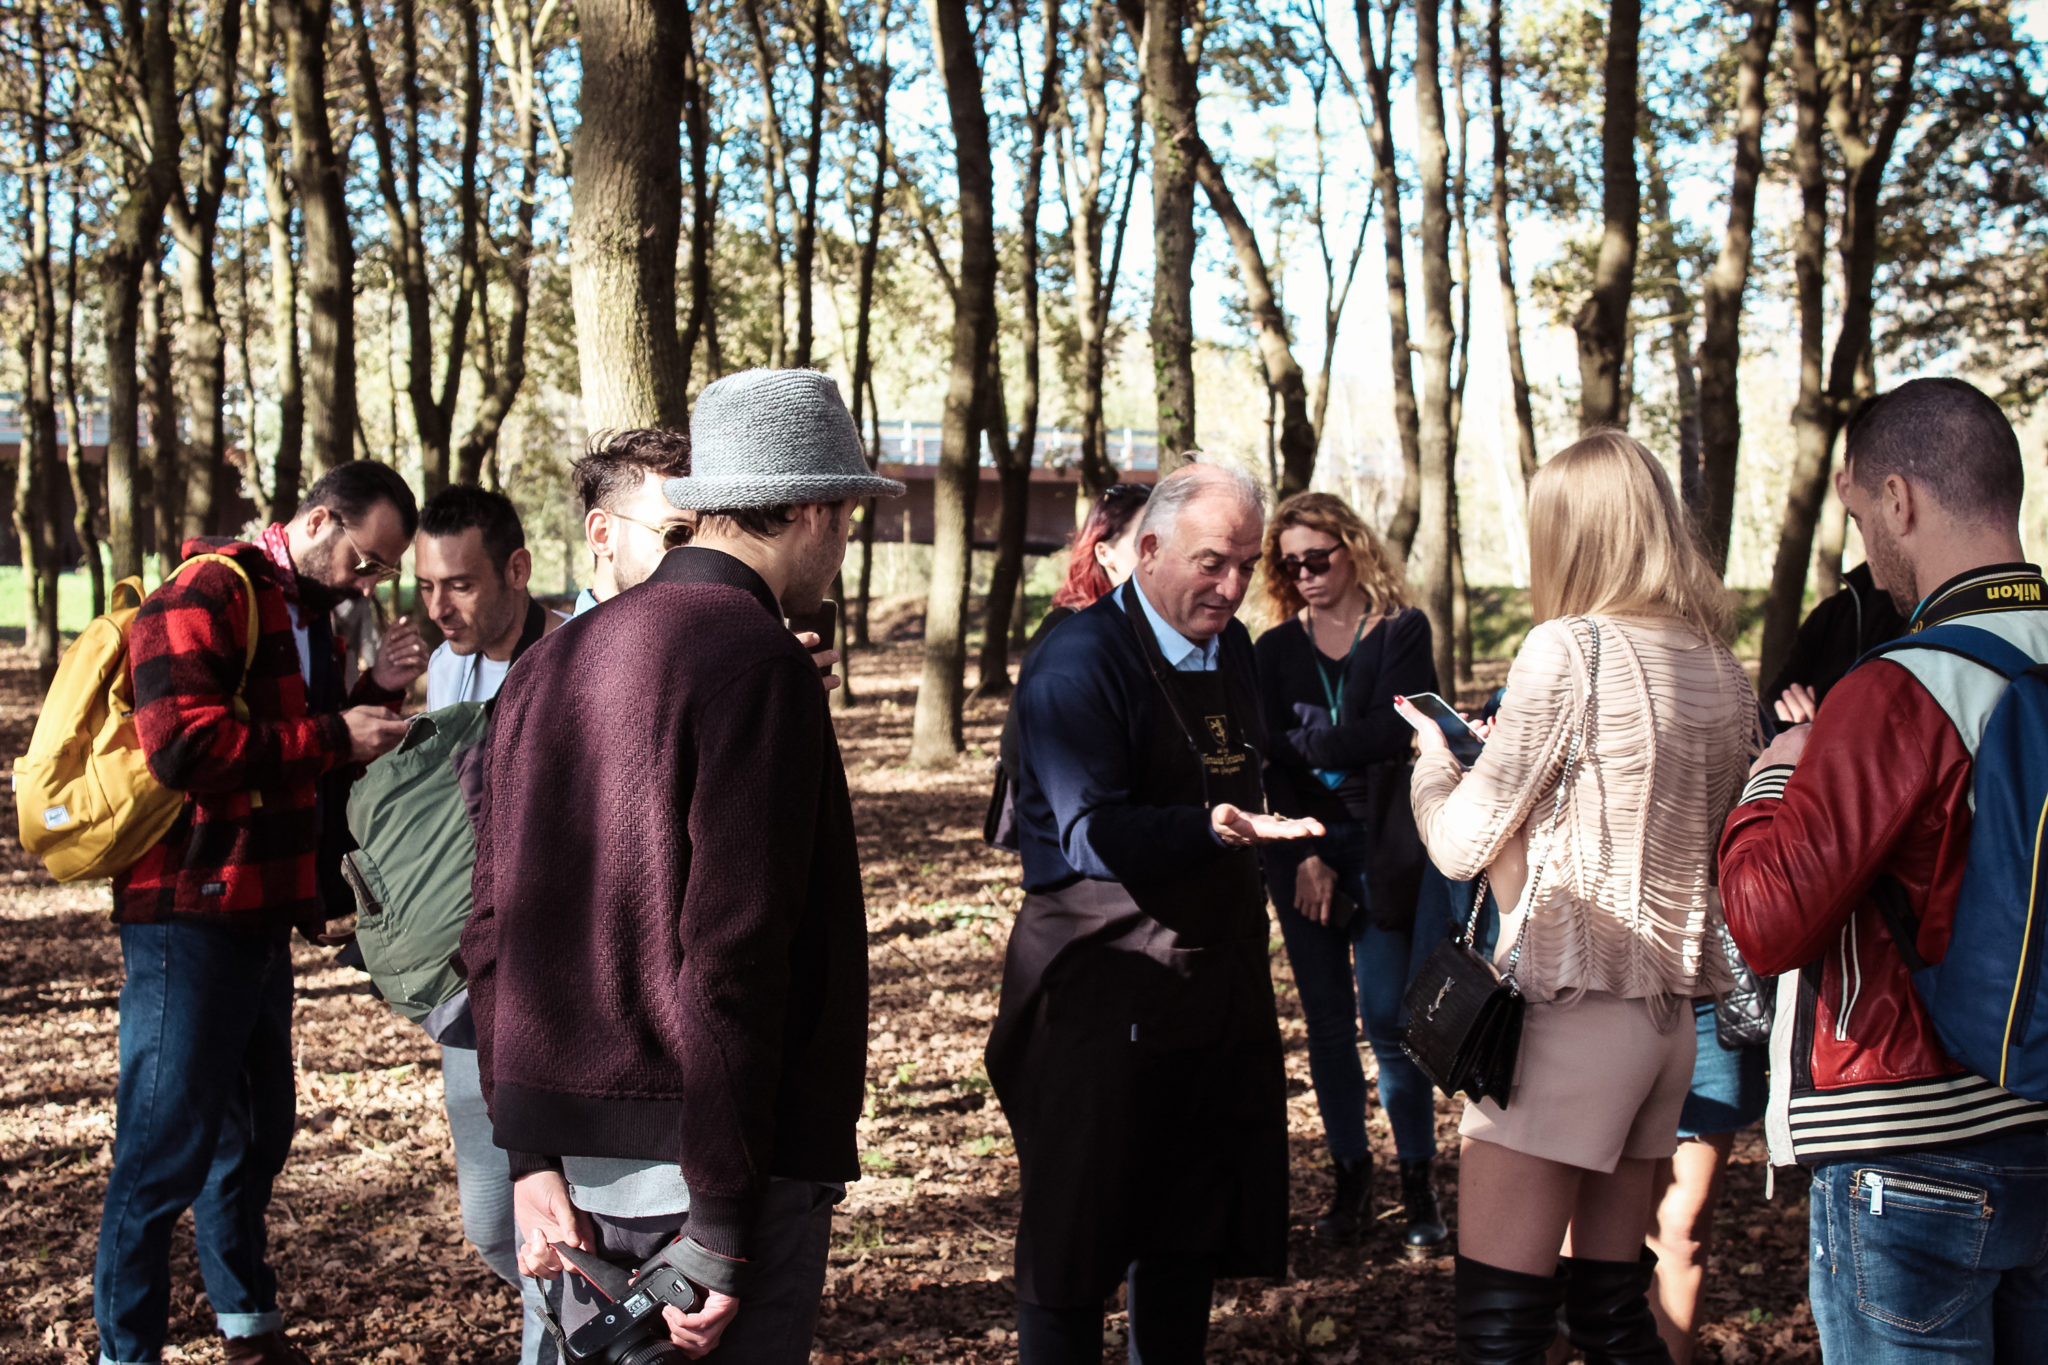 Special guests hunting for truffles, tasting the delicious wines of Tenuta Torciano